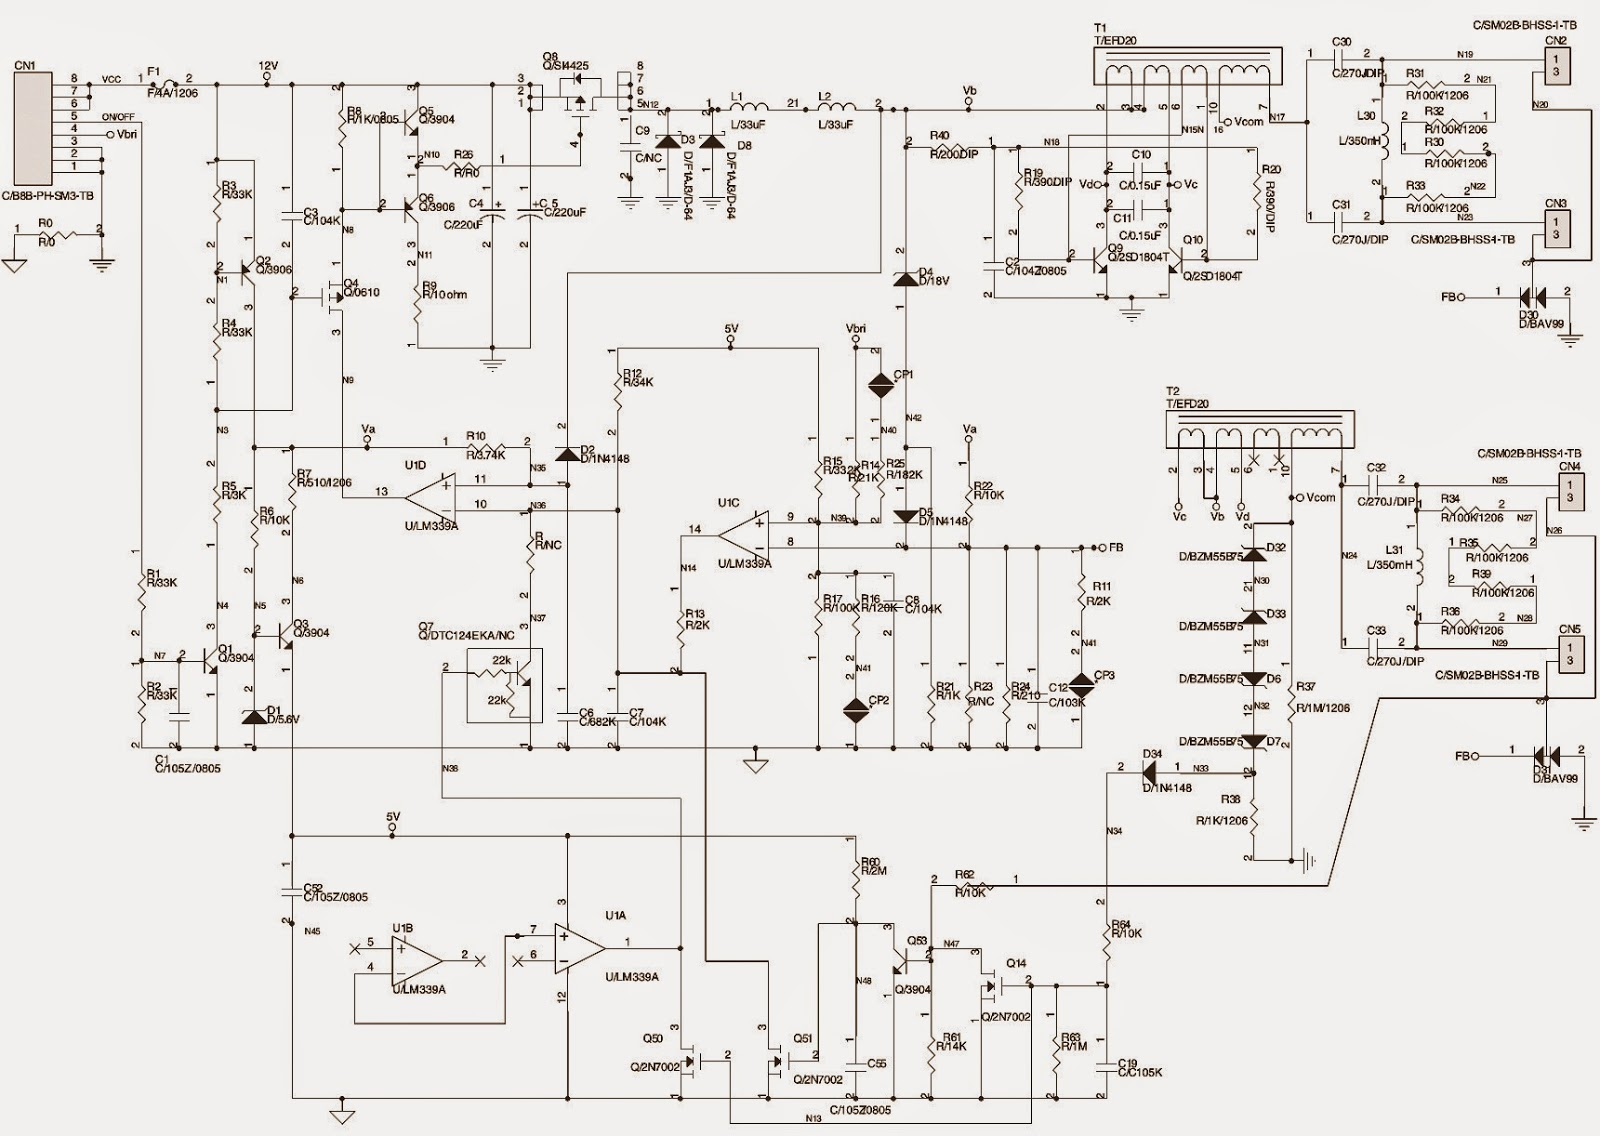 Remarkable Lcd Tv Back Light Inverter Board Schematics Circuit Diagrams Wiring Cloud Hisonuggs Outletorg